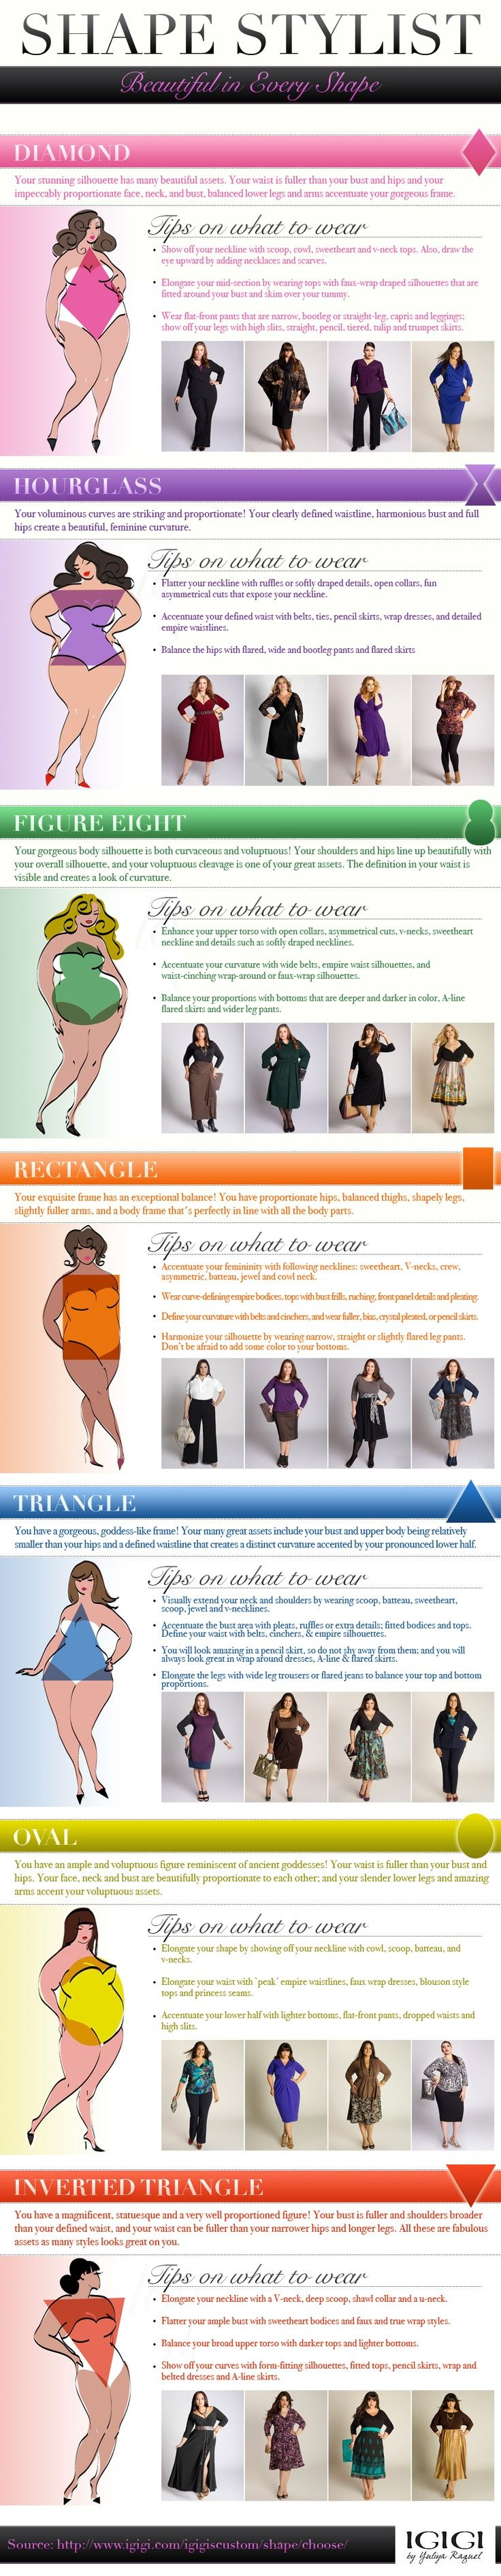 Dressing+for+Your+Shape+as+a+Plus+Size+Woman+on+The+Curvy+Fashionista